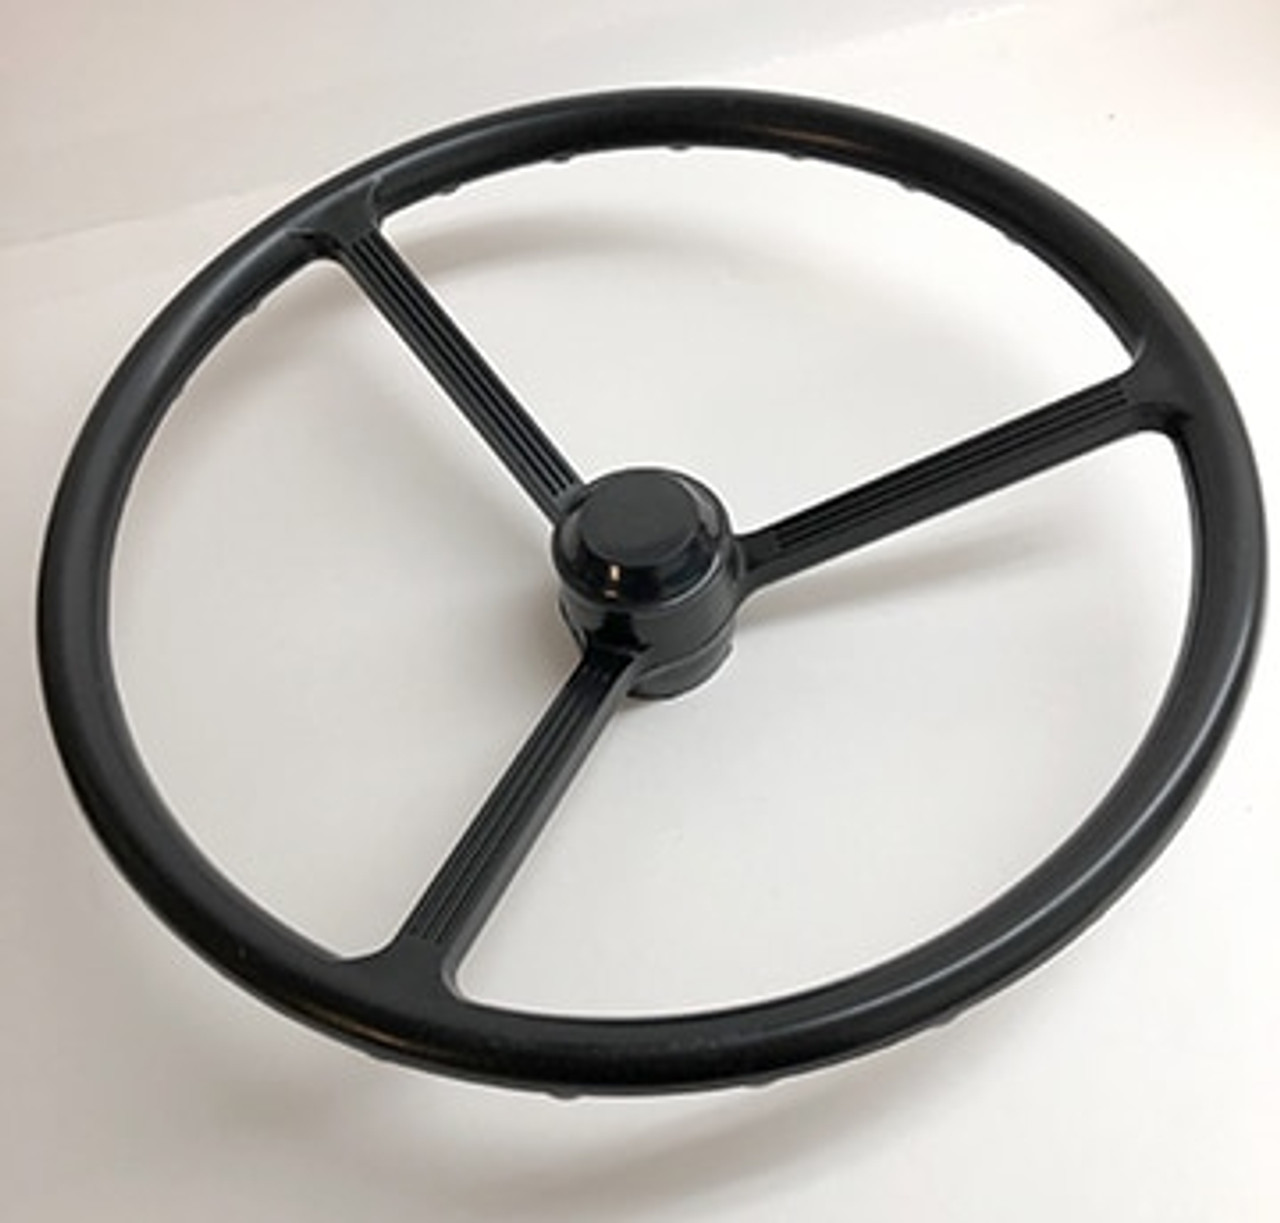 S650G steering wheel (keyed hub)